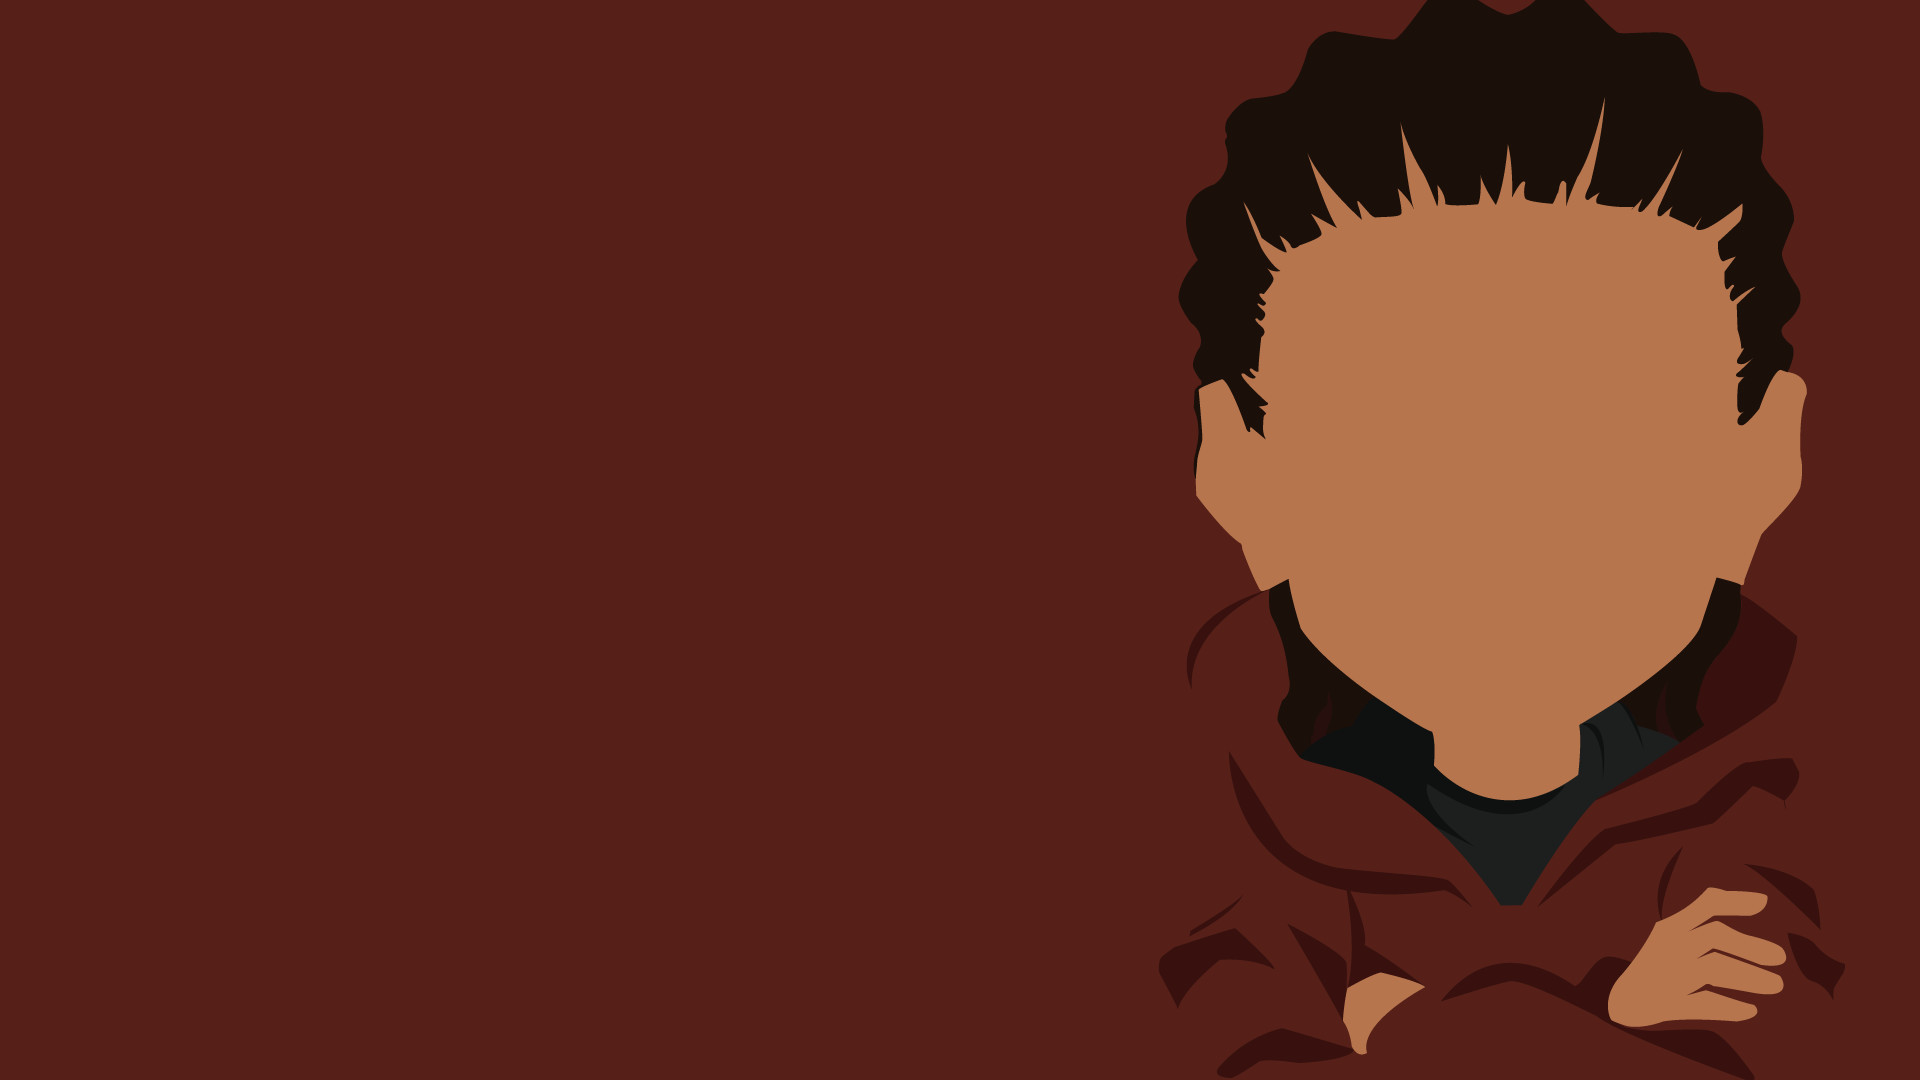 Res: 1920x1080, 64 The Boondocks Wallpapers On Wallpaperplay